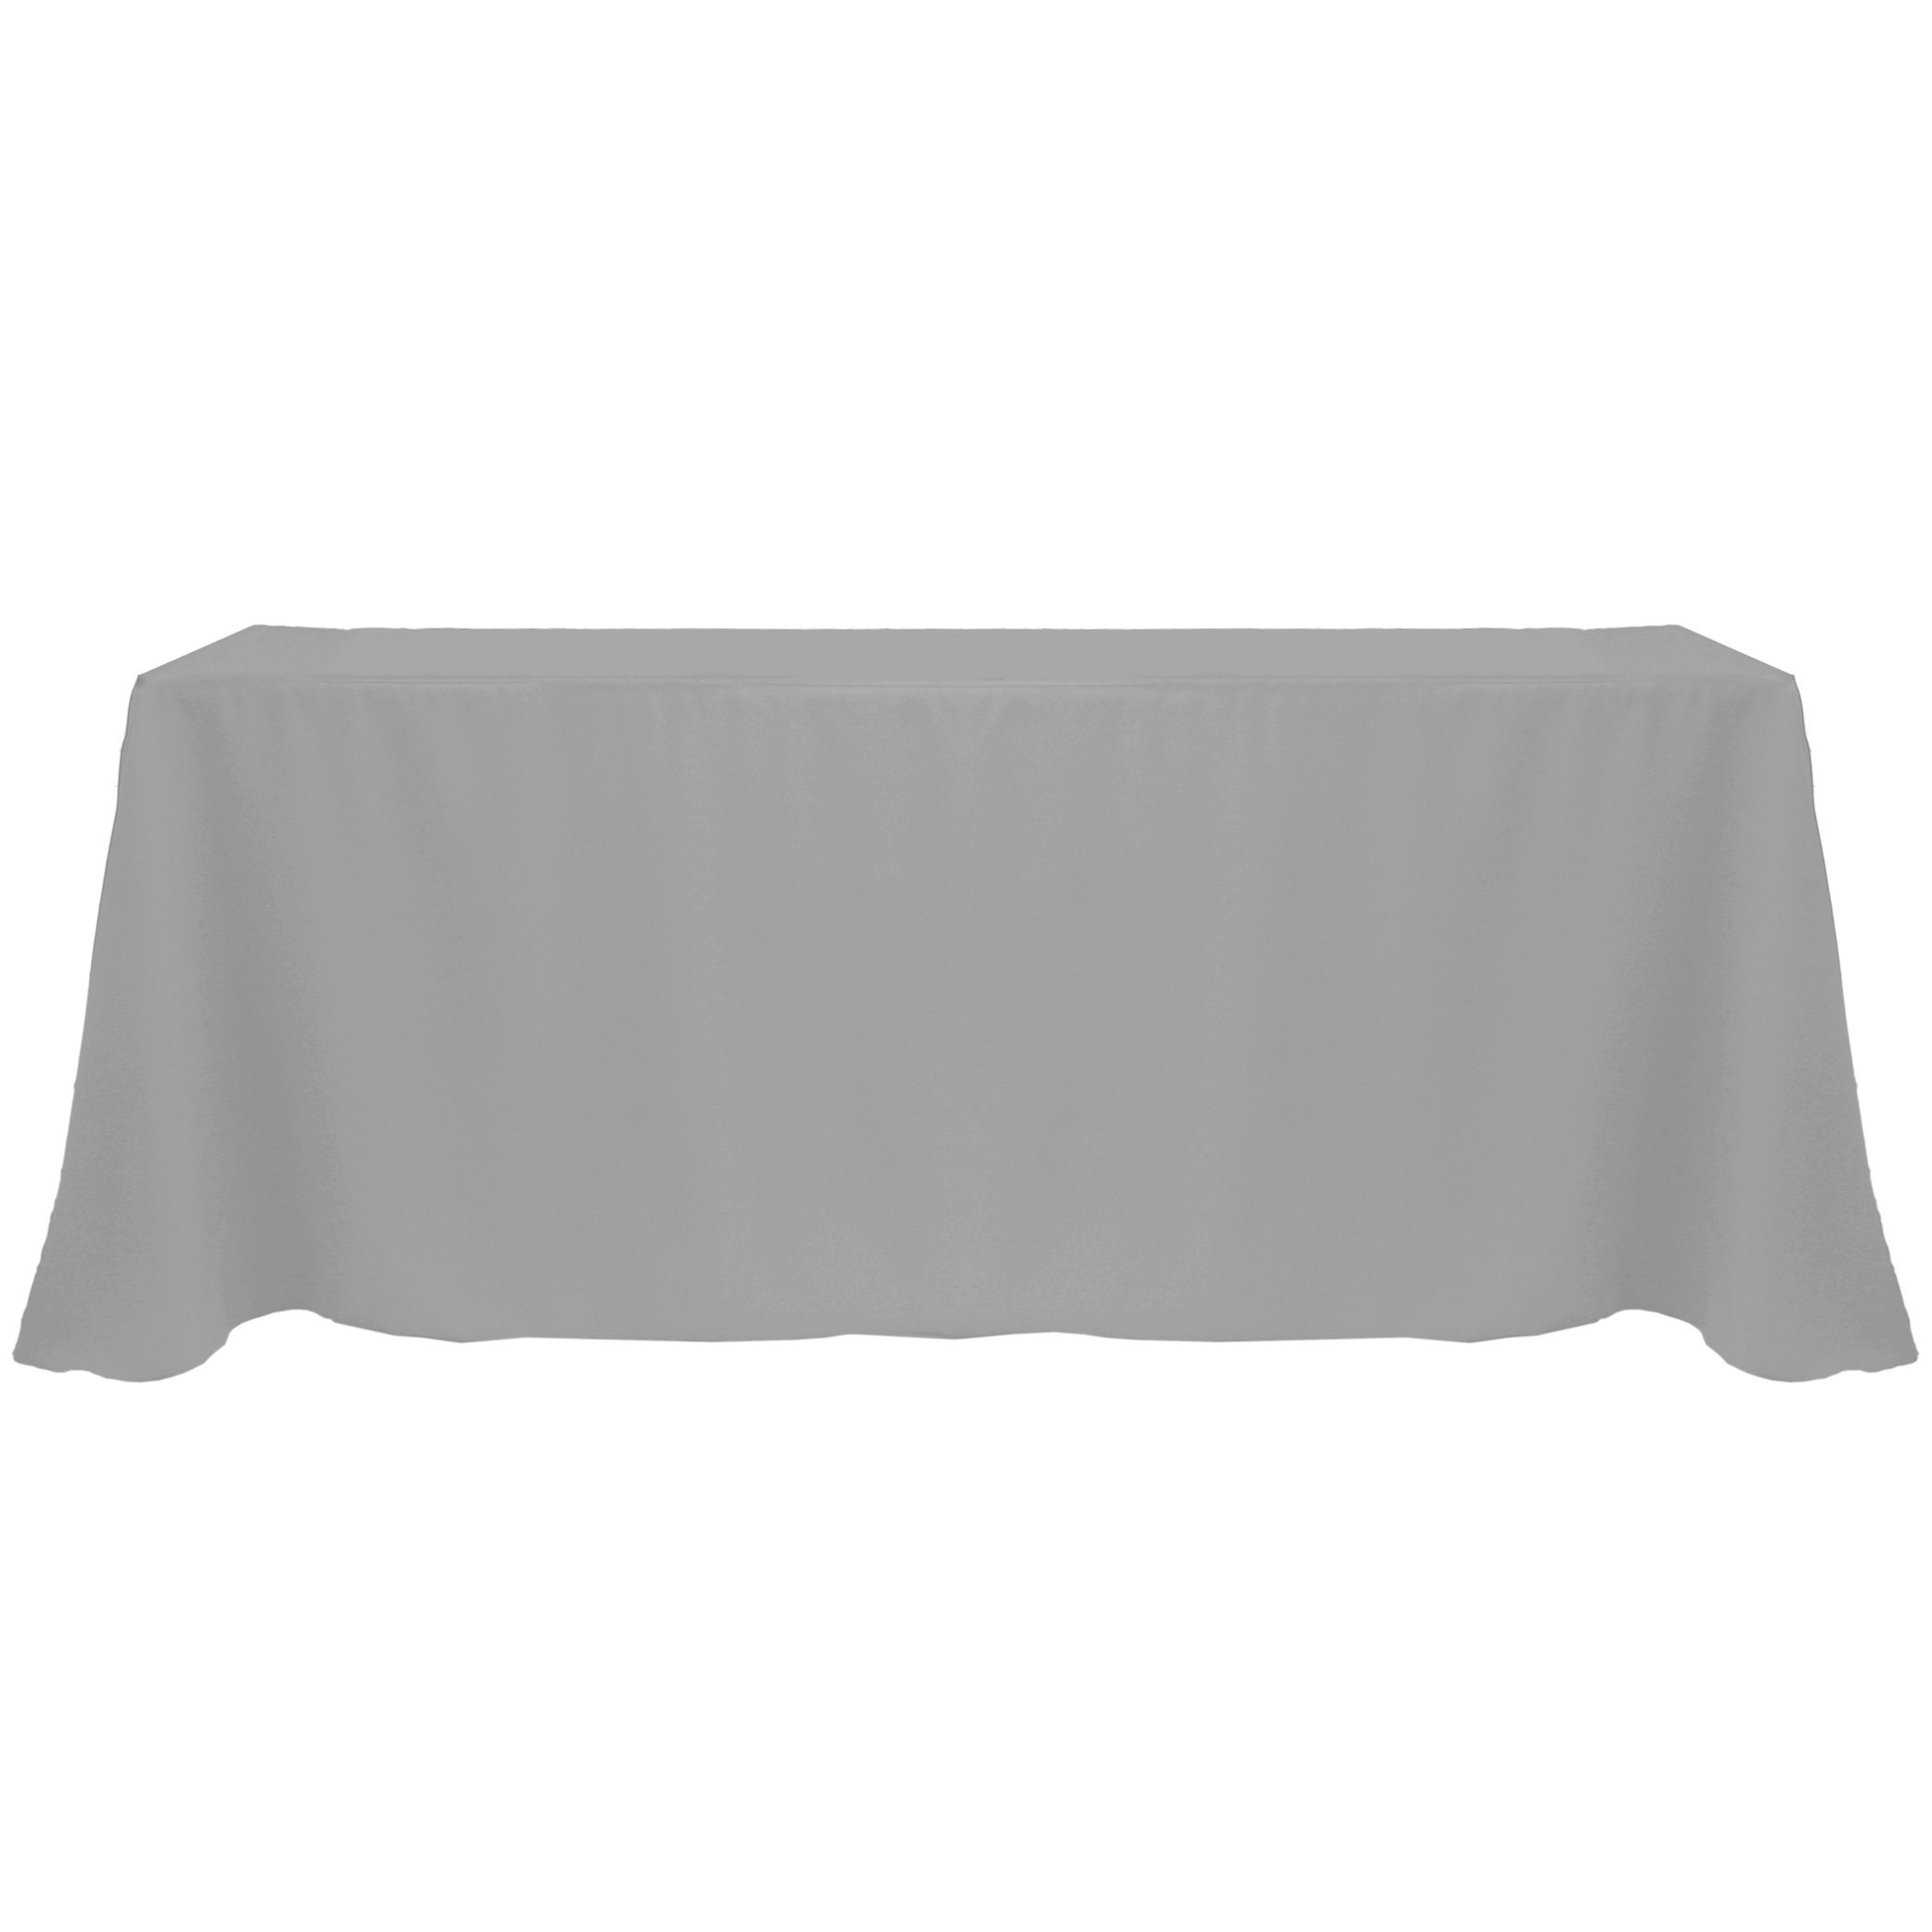 Ultimate Textile (10 Pack) 90 x 132-Inch Rectangular Polyester Linen Tablecloth with Rounded Corners - for Wedding, Restaurant or Banquet use, Charcoal Grey